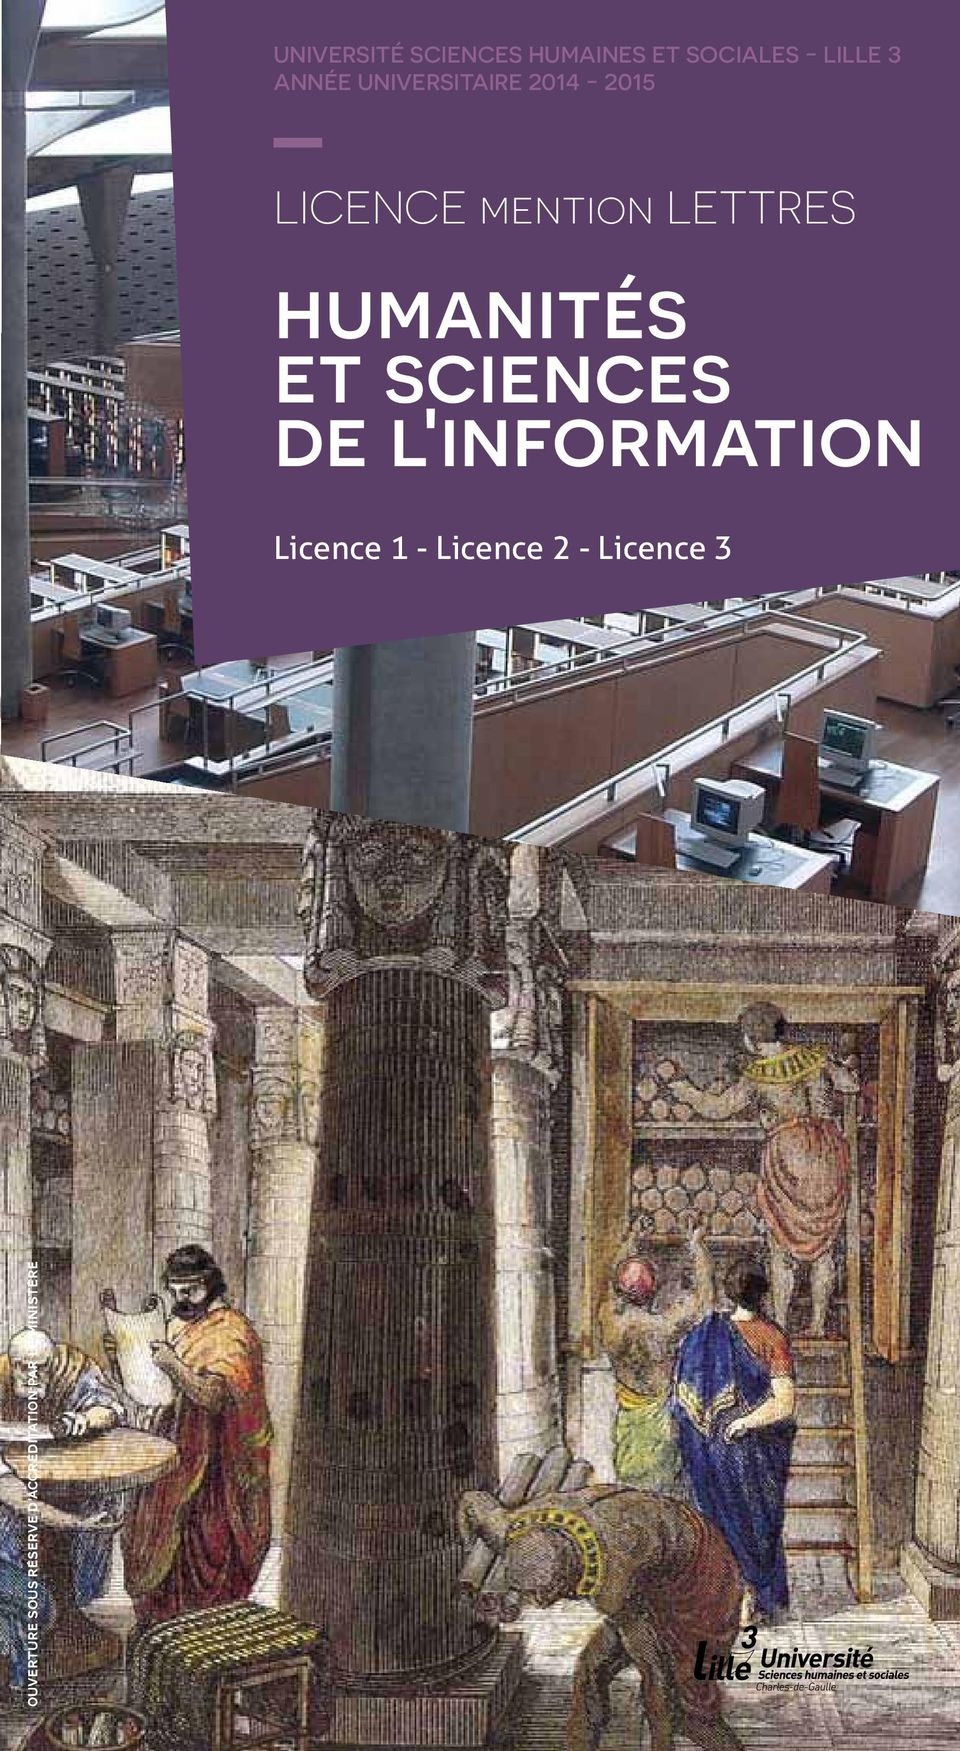 et sciences de l'information Licence 1 - Licence 2 -